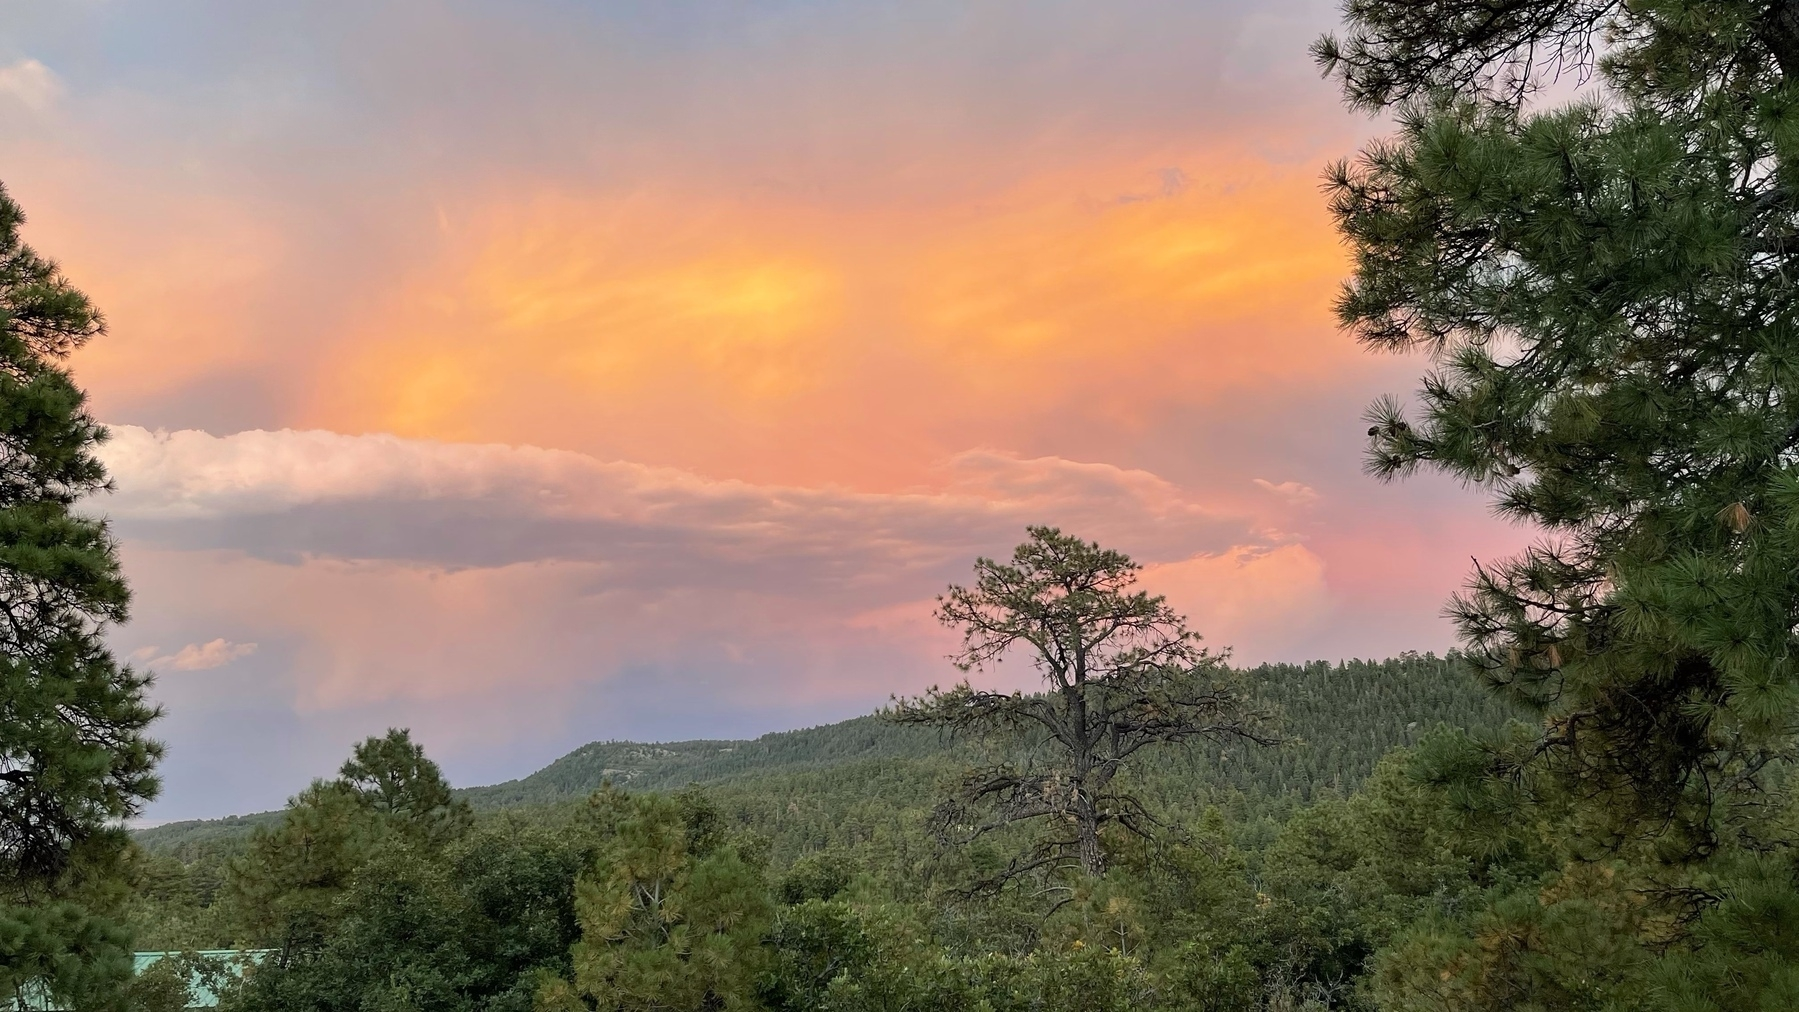 sunset overlooking sloping tree covered mountain side